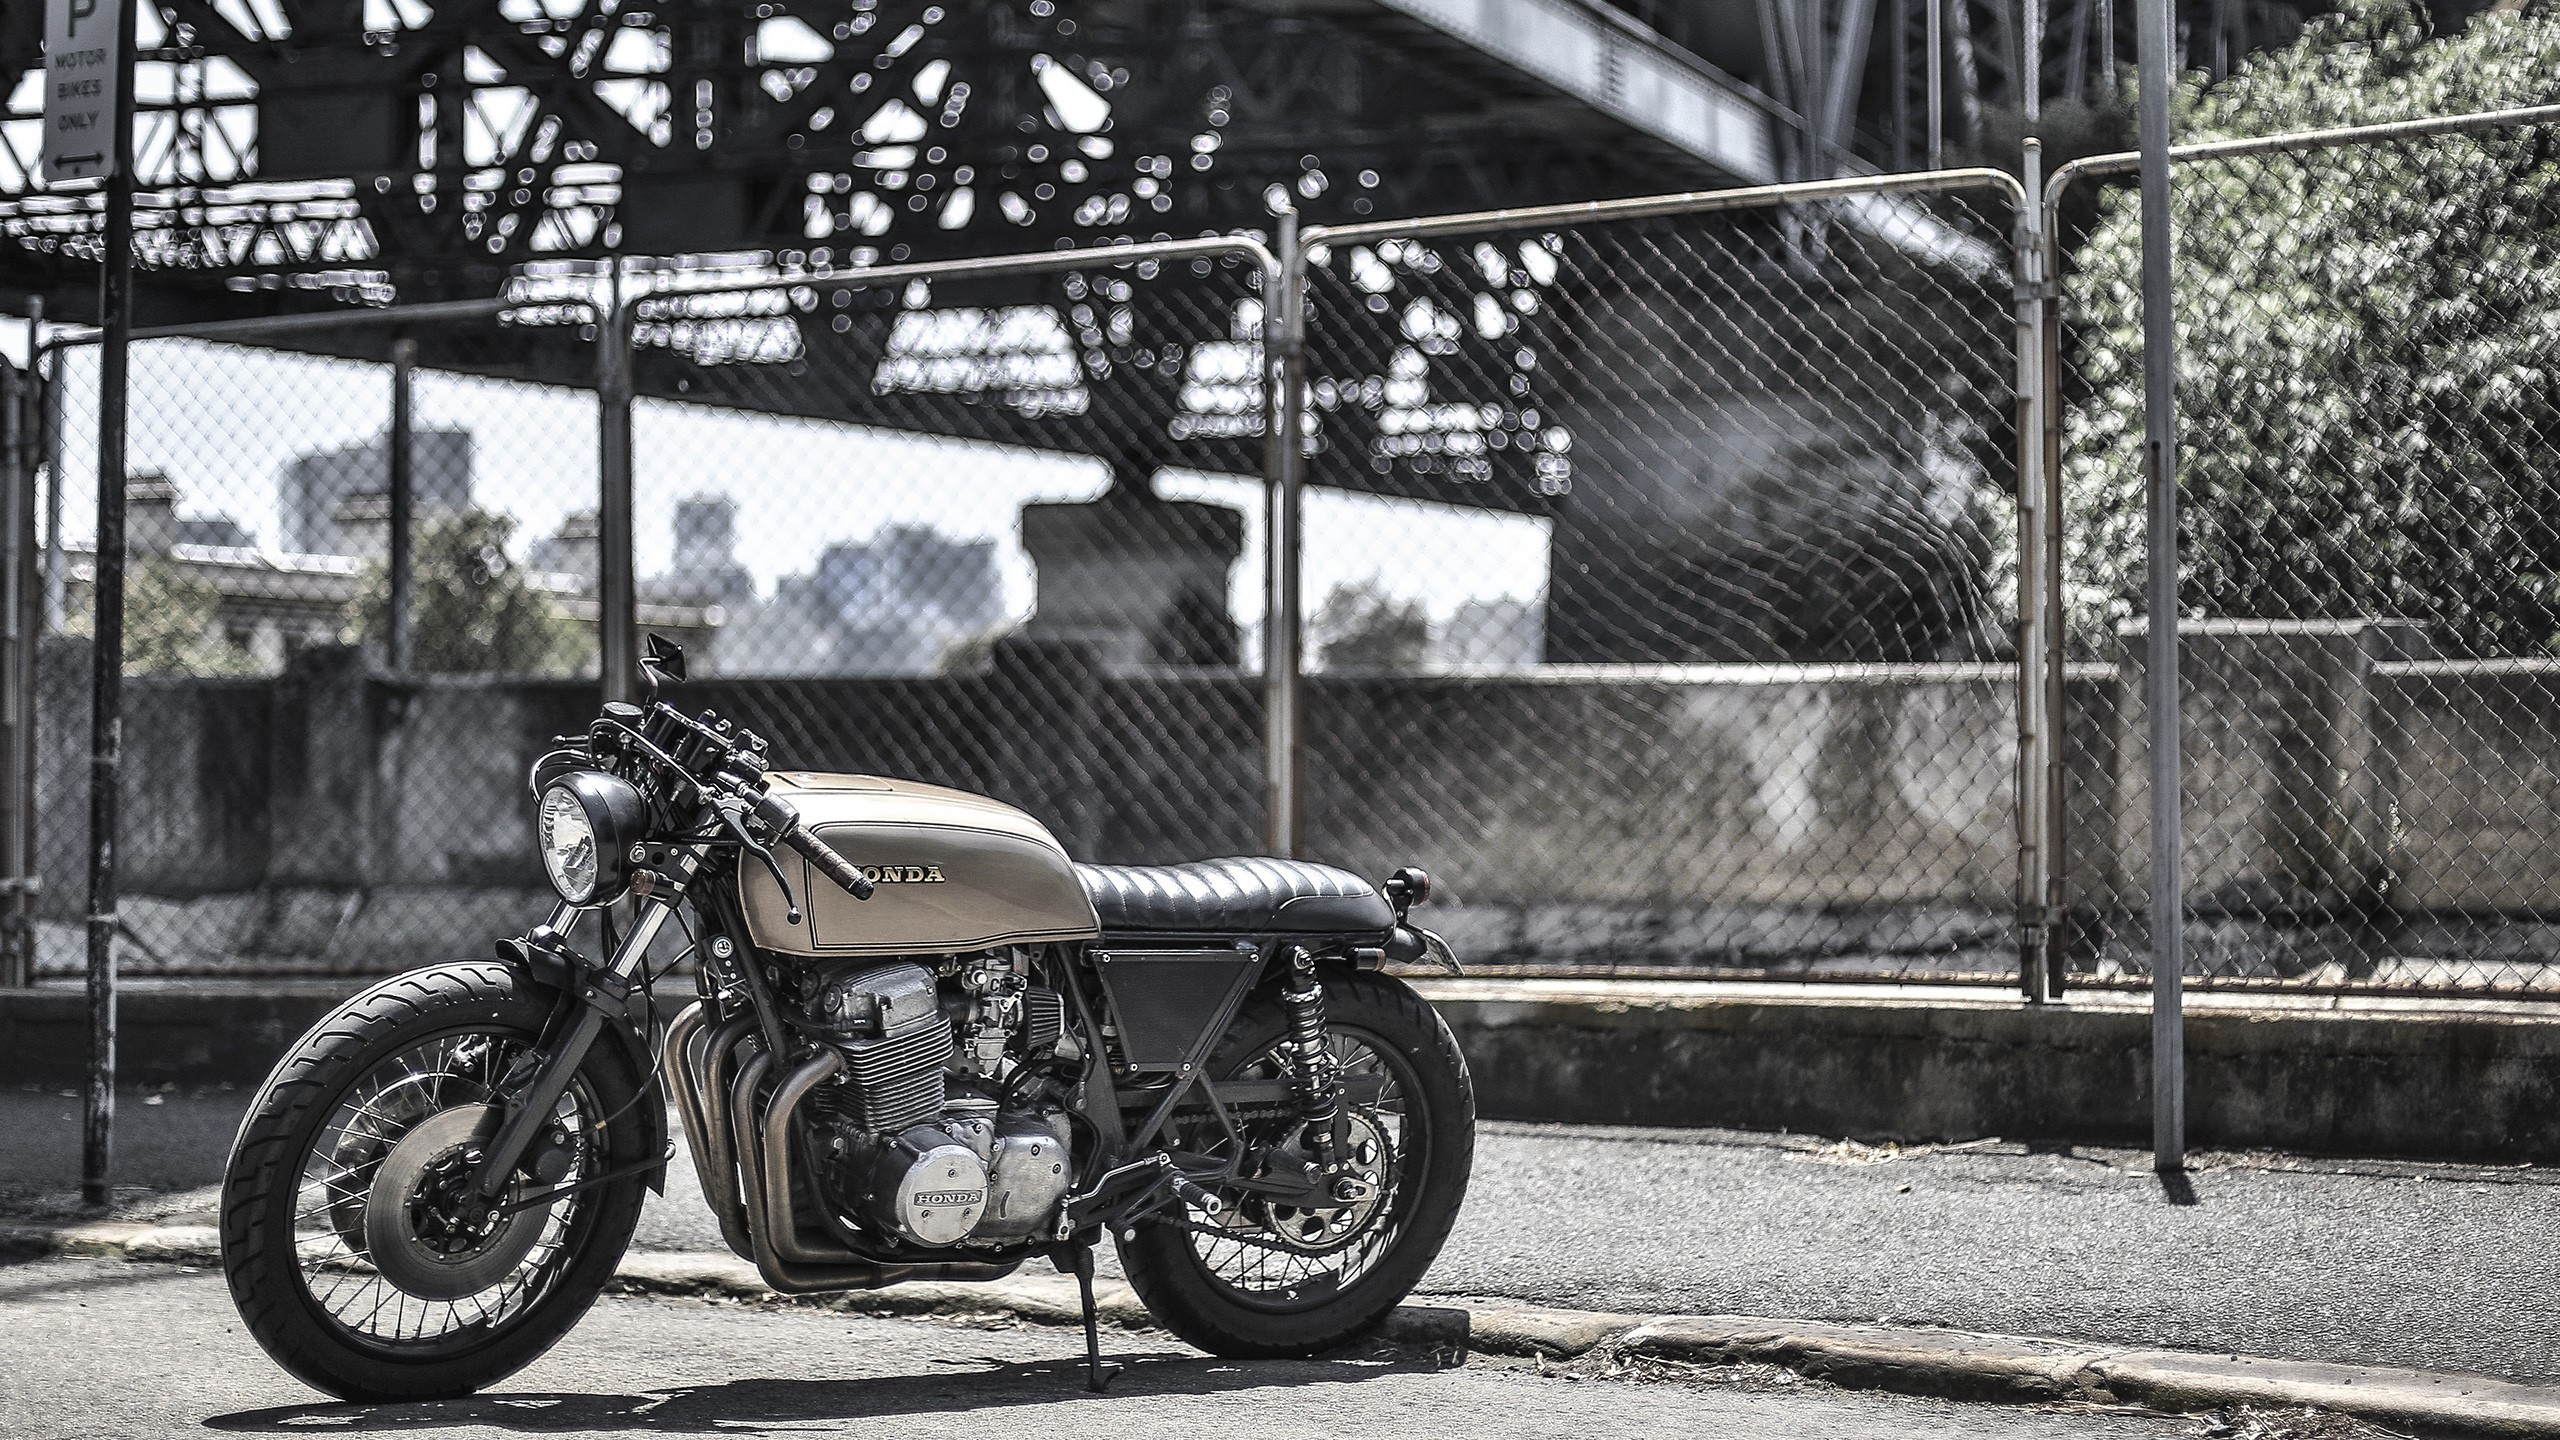 2560x1440 Honda, Motorcycle, Fence, Bridge, Bobber Wallpapers HD / Desktop and Mobile  Backgrounds